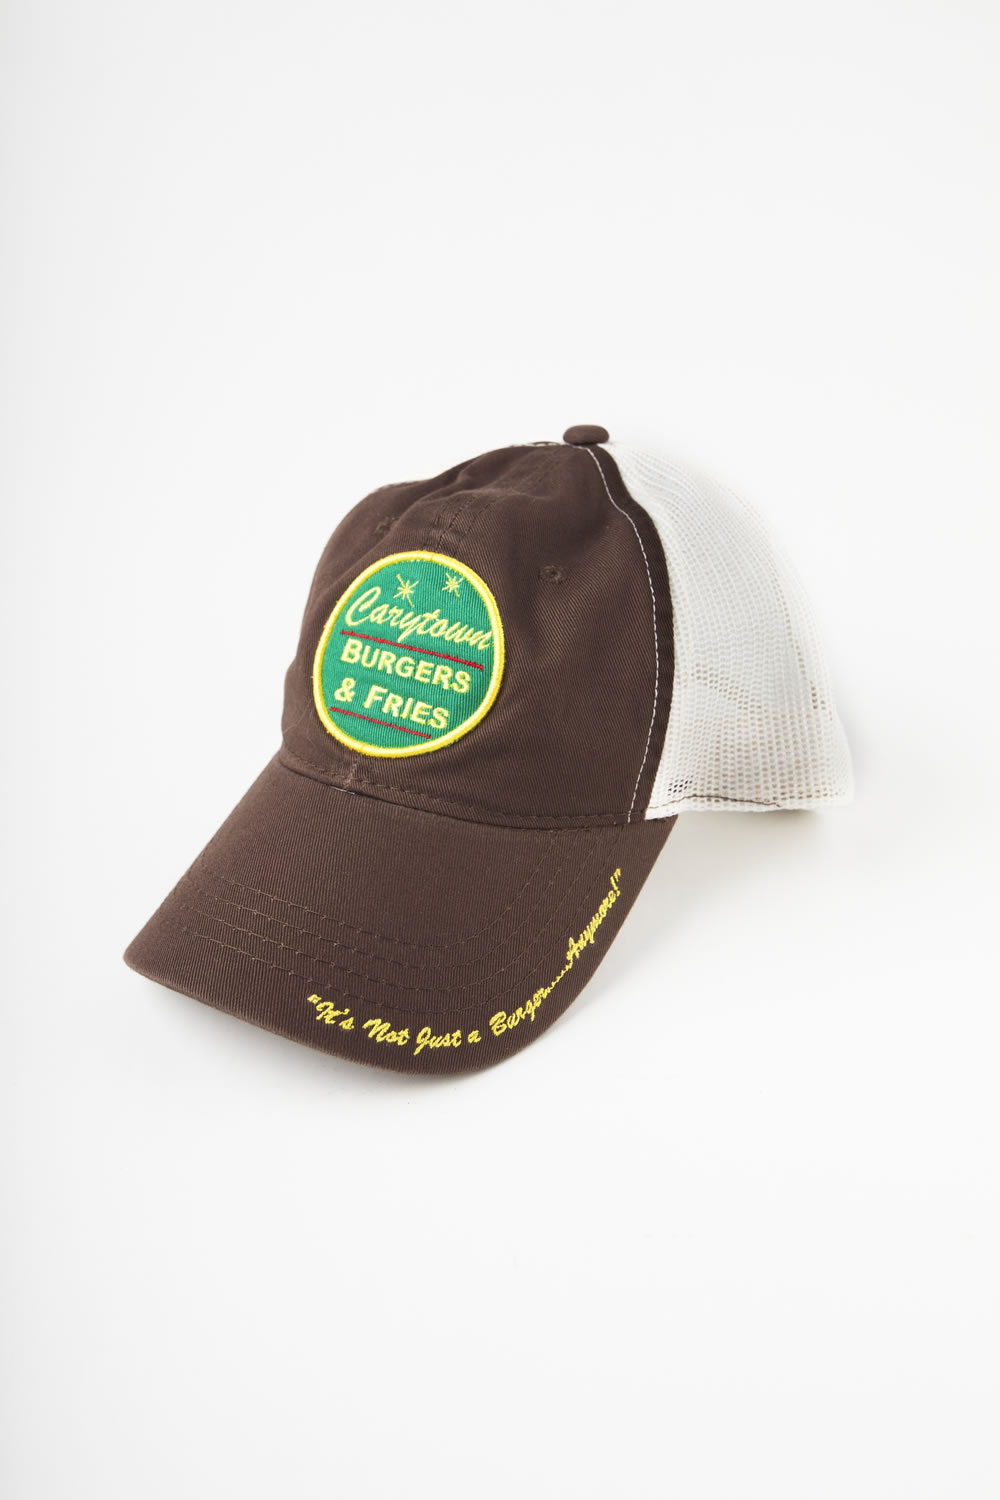 Ball Cap (Brown With White Mesh)